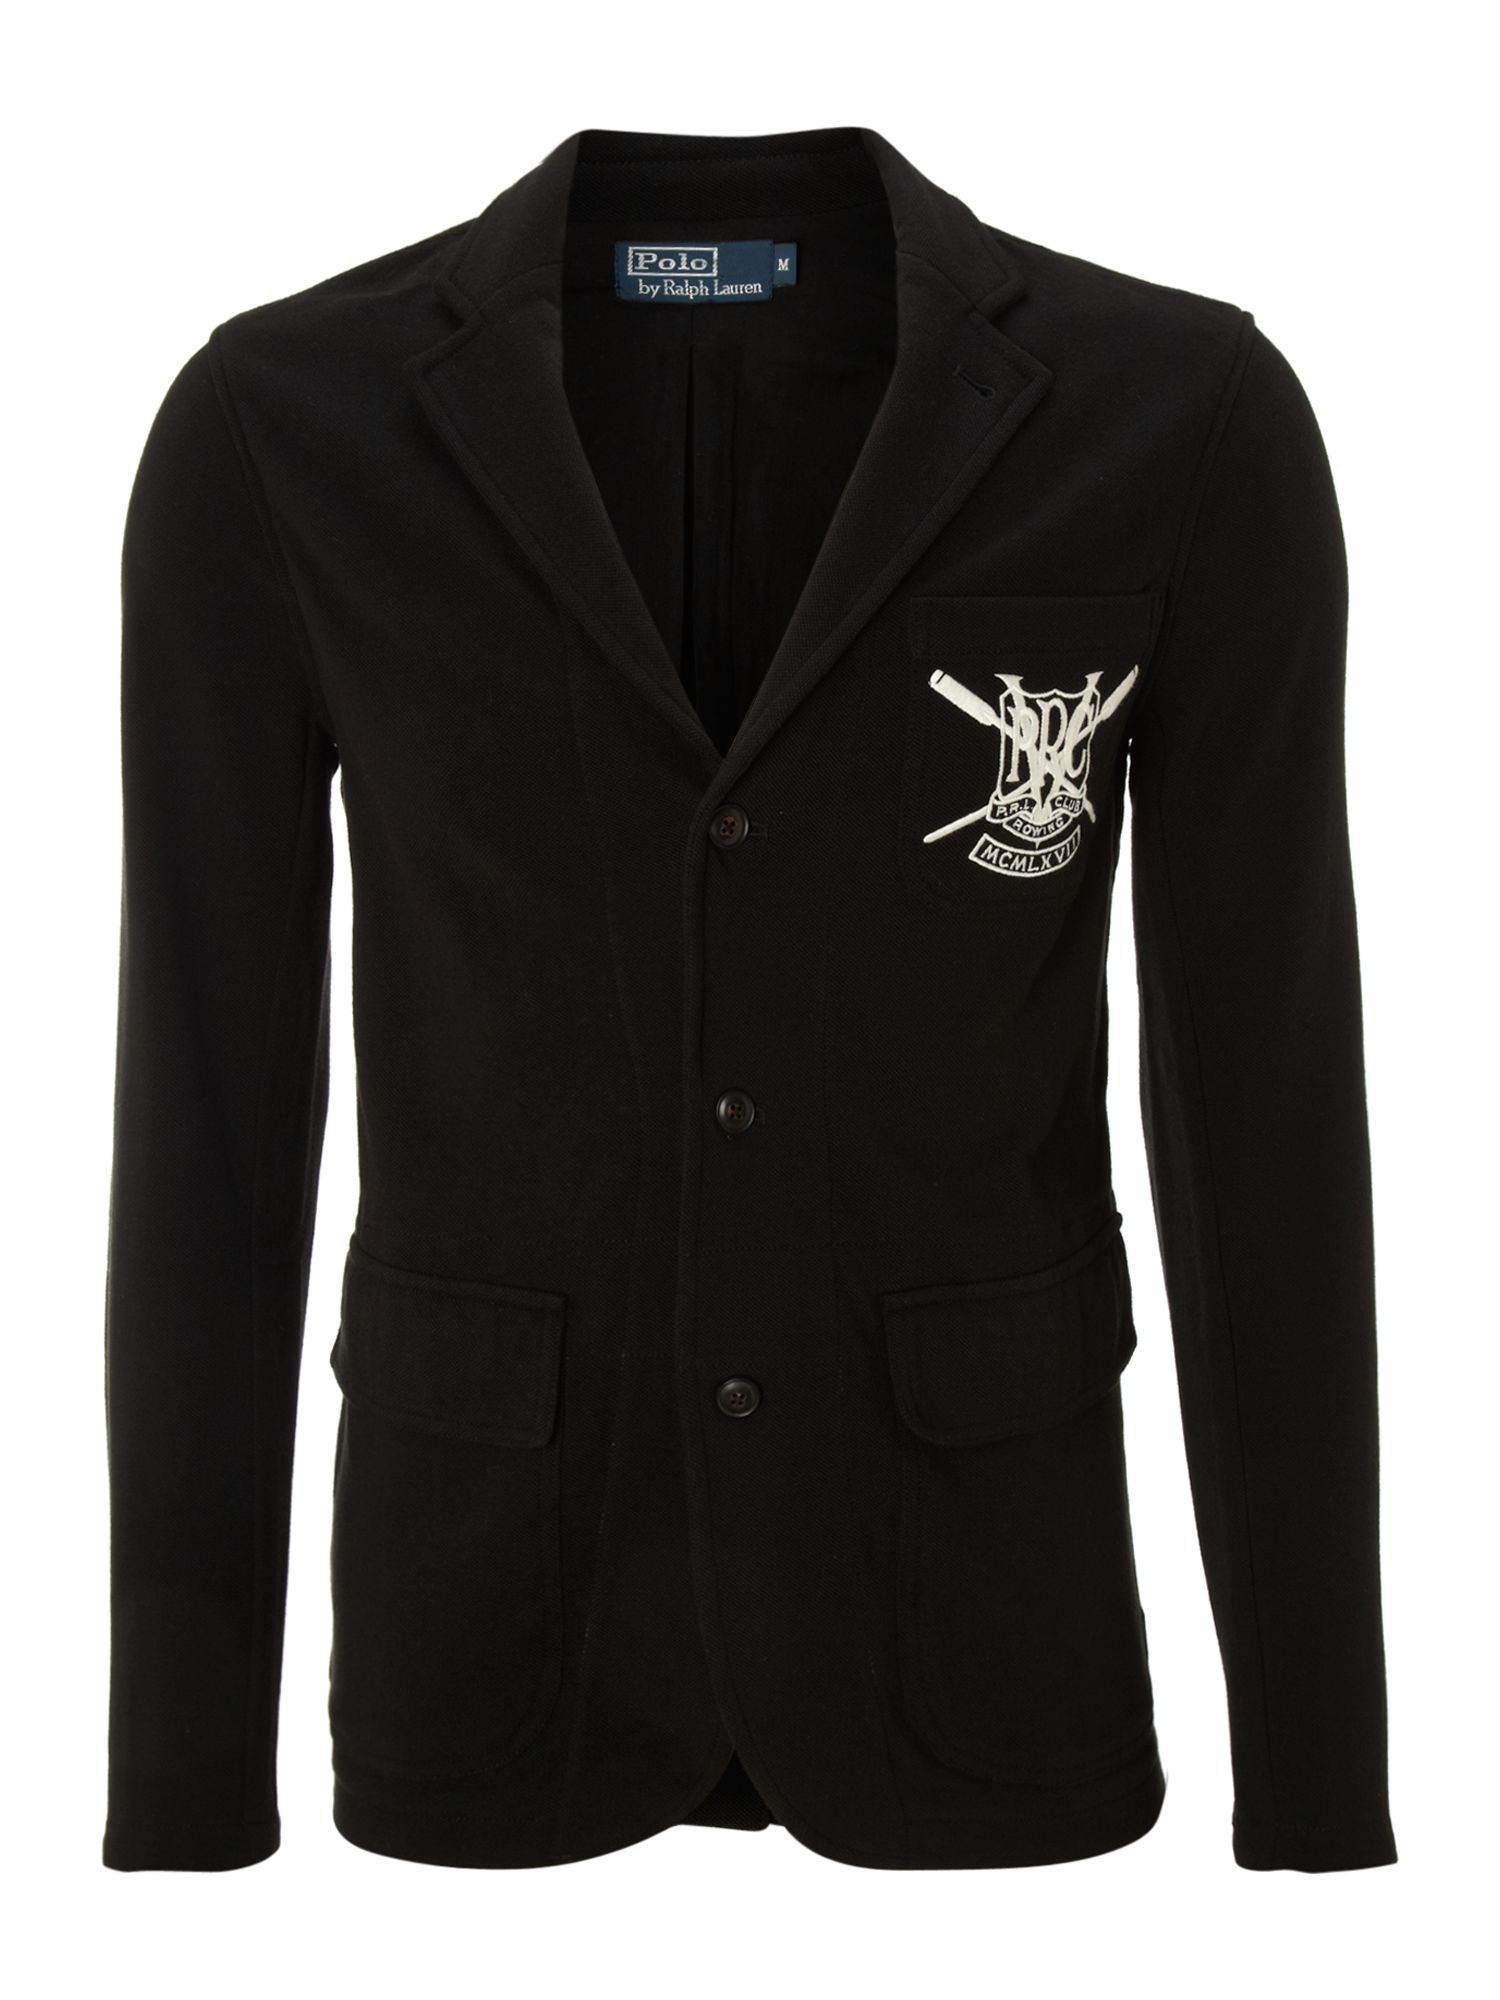 Jersey blazer with contrast shield badge